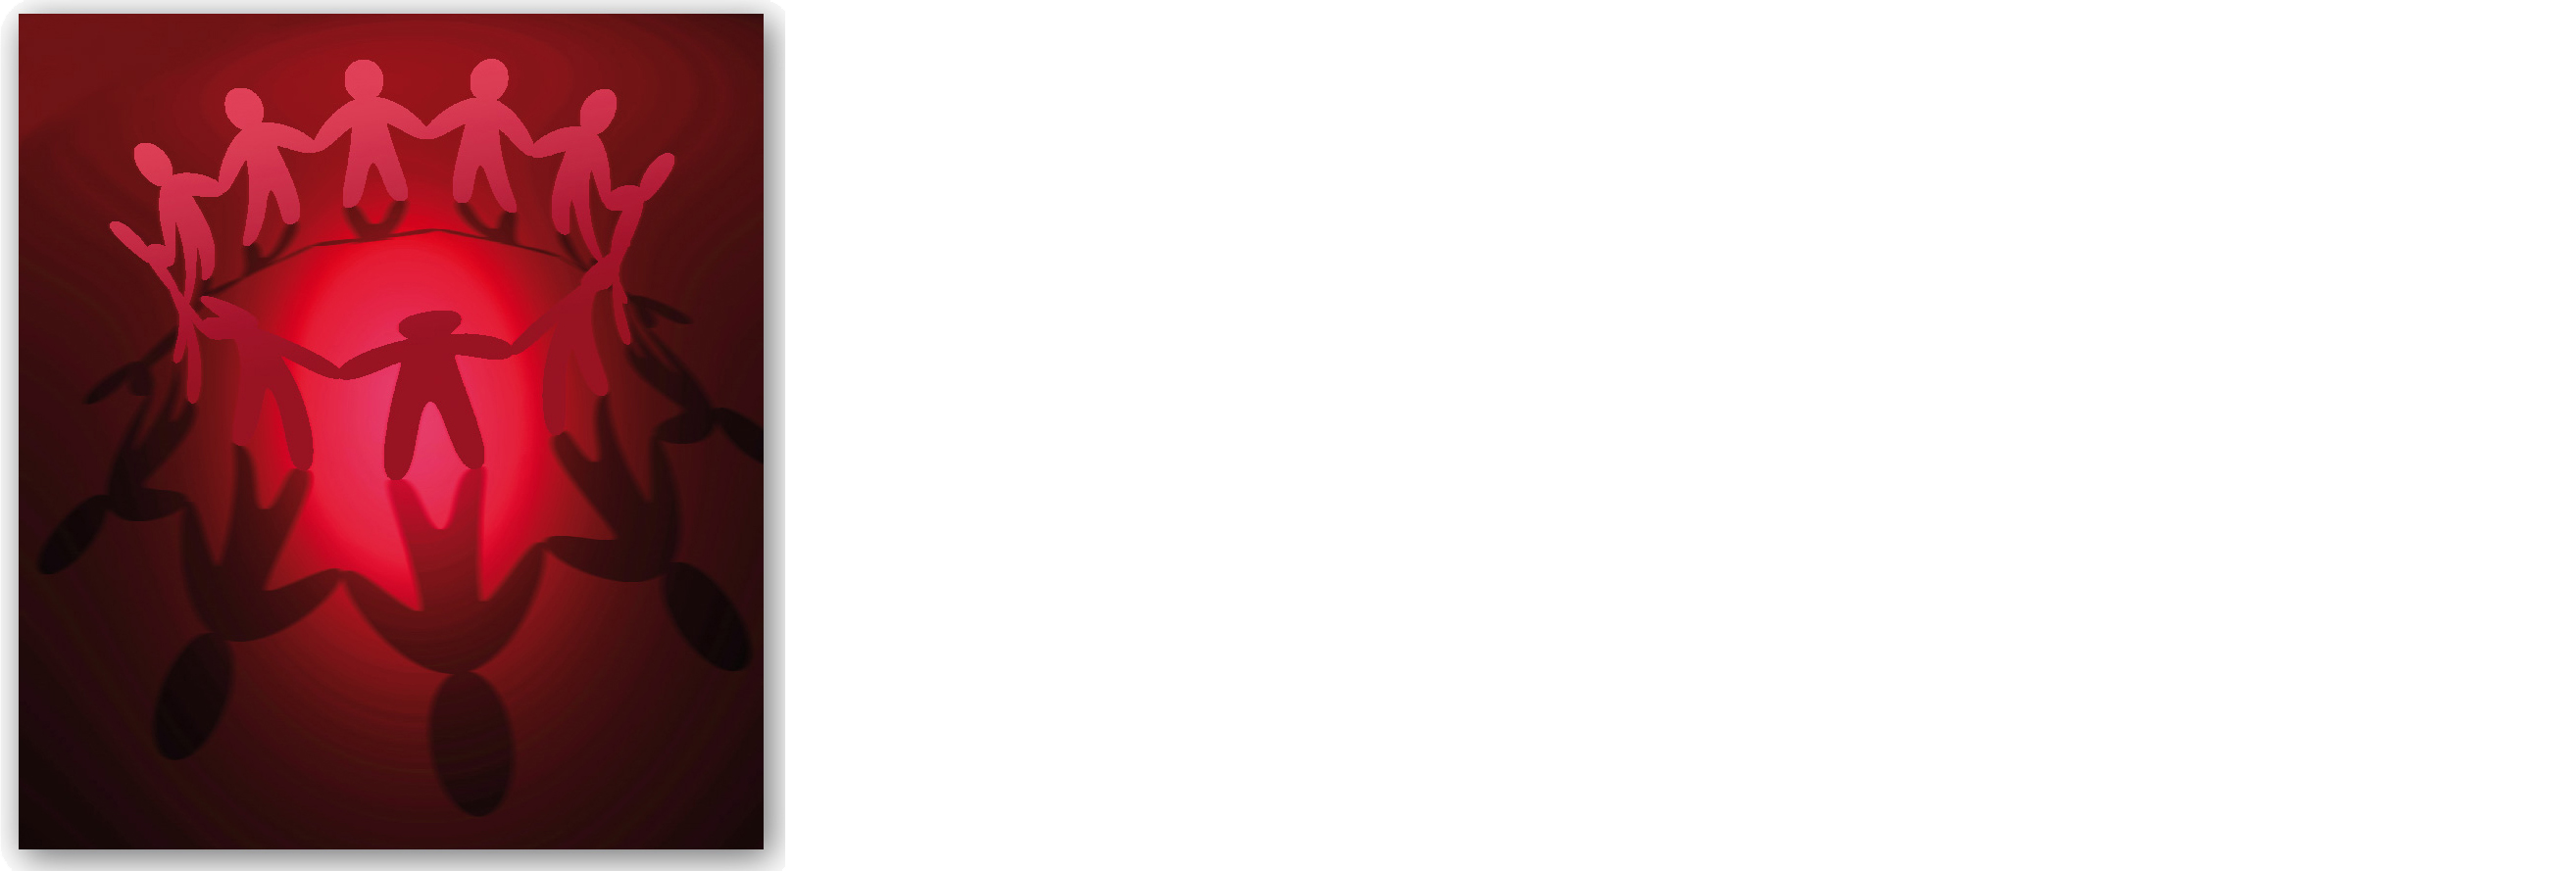 5èmes Assises Internationales de l'Economie du Partage